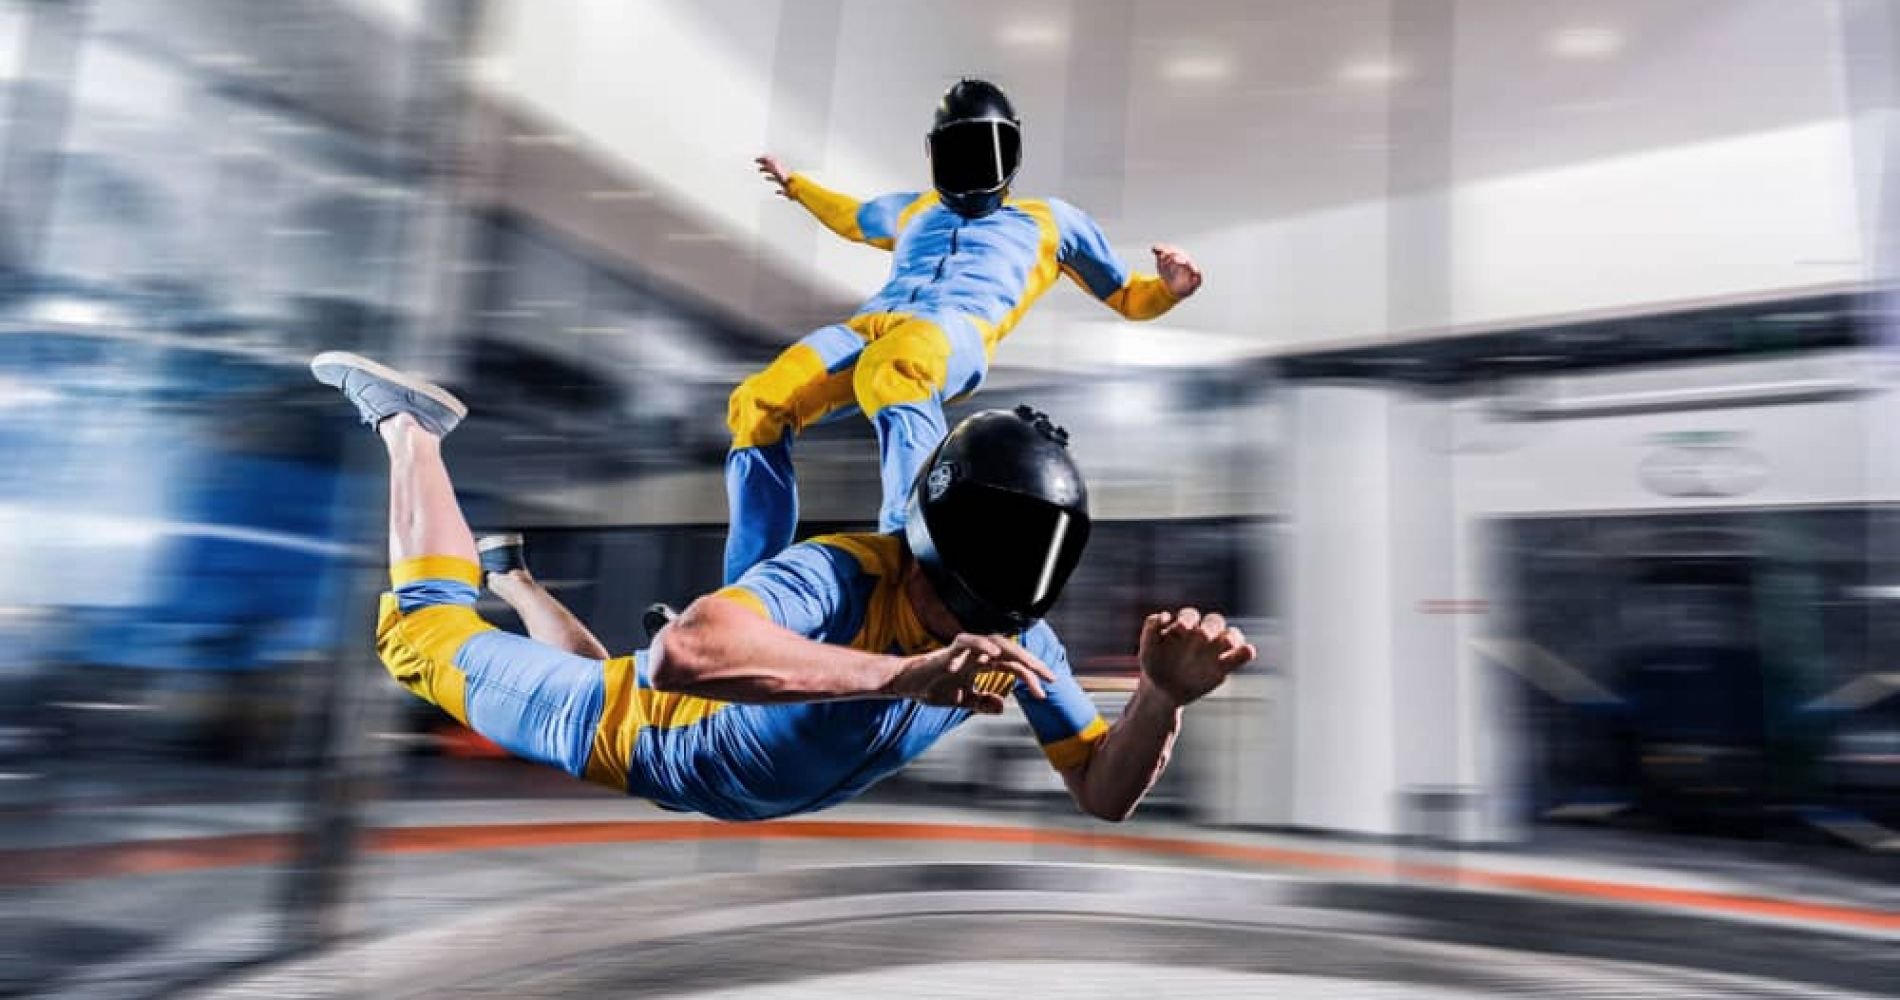 iFly Dubai Indoor Skydiving and other attractions